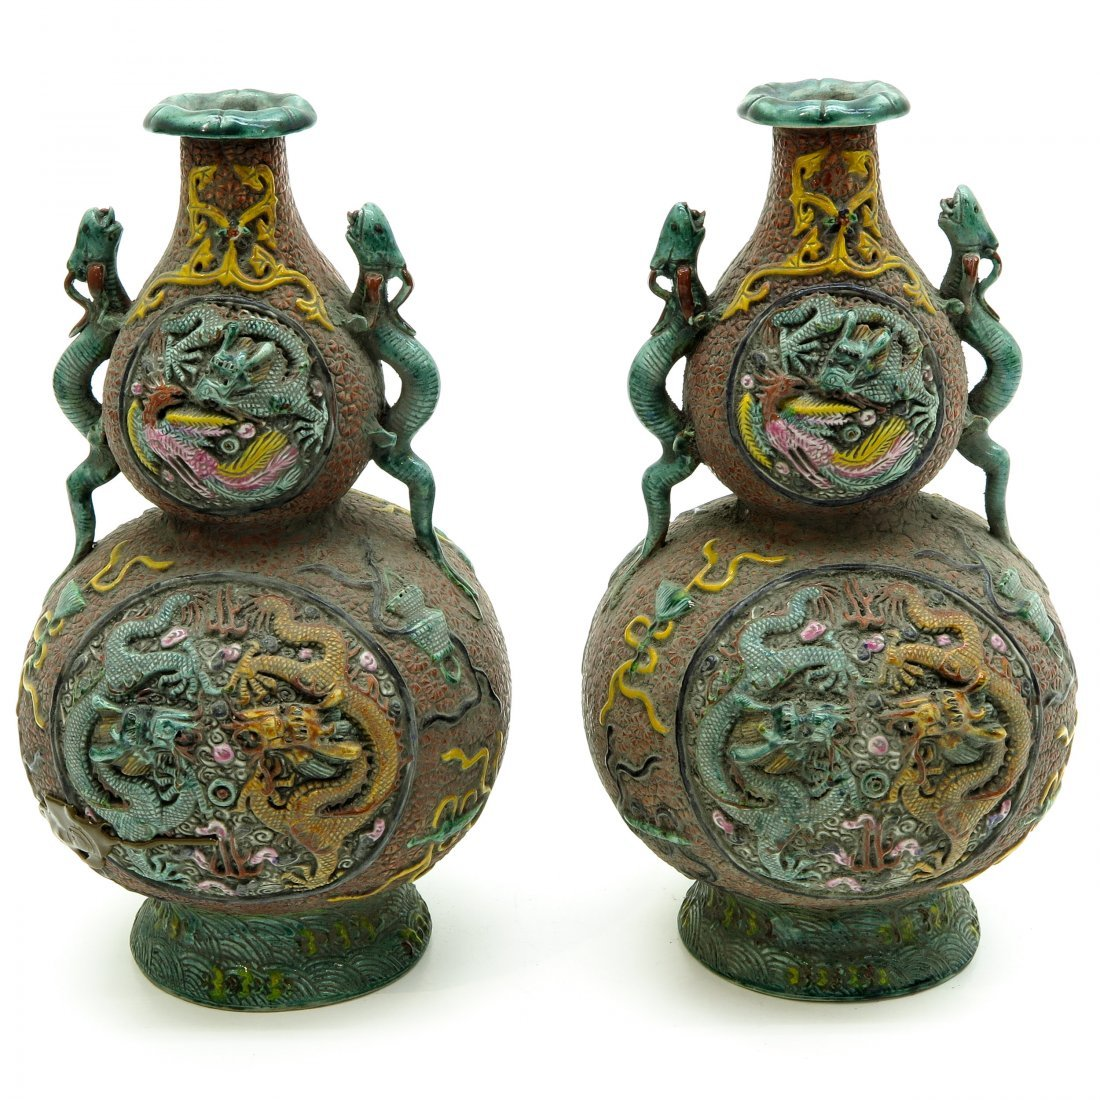 Lot of 19th Century China Porcelain Vases